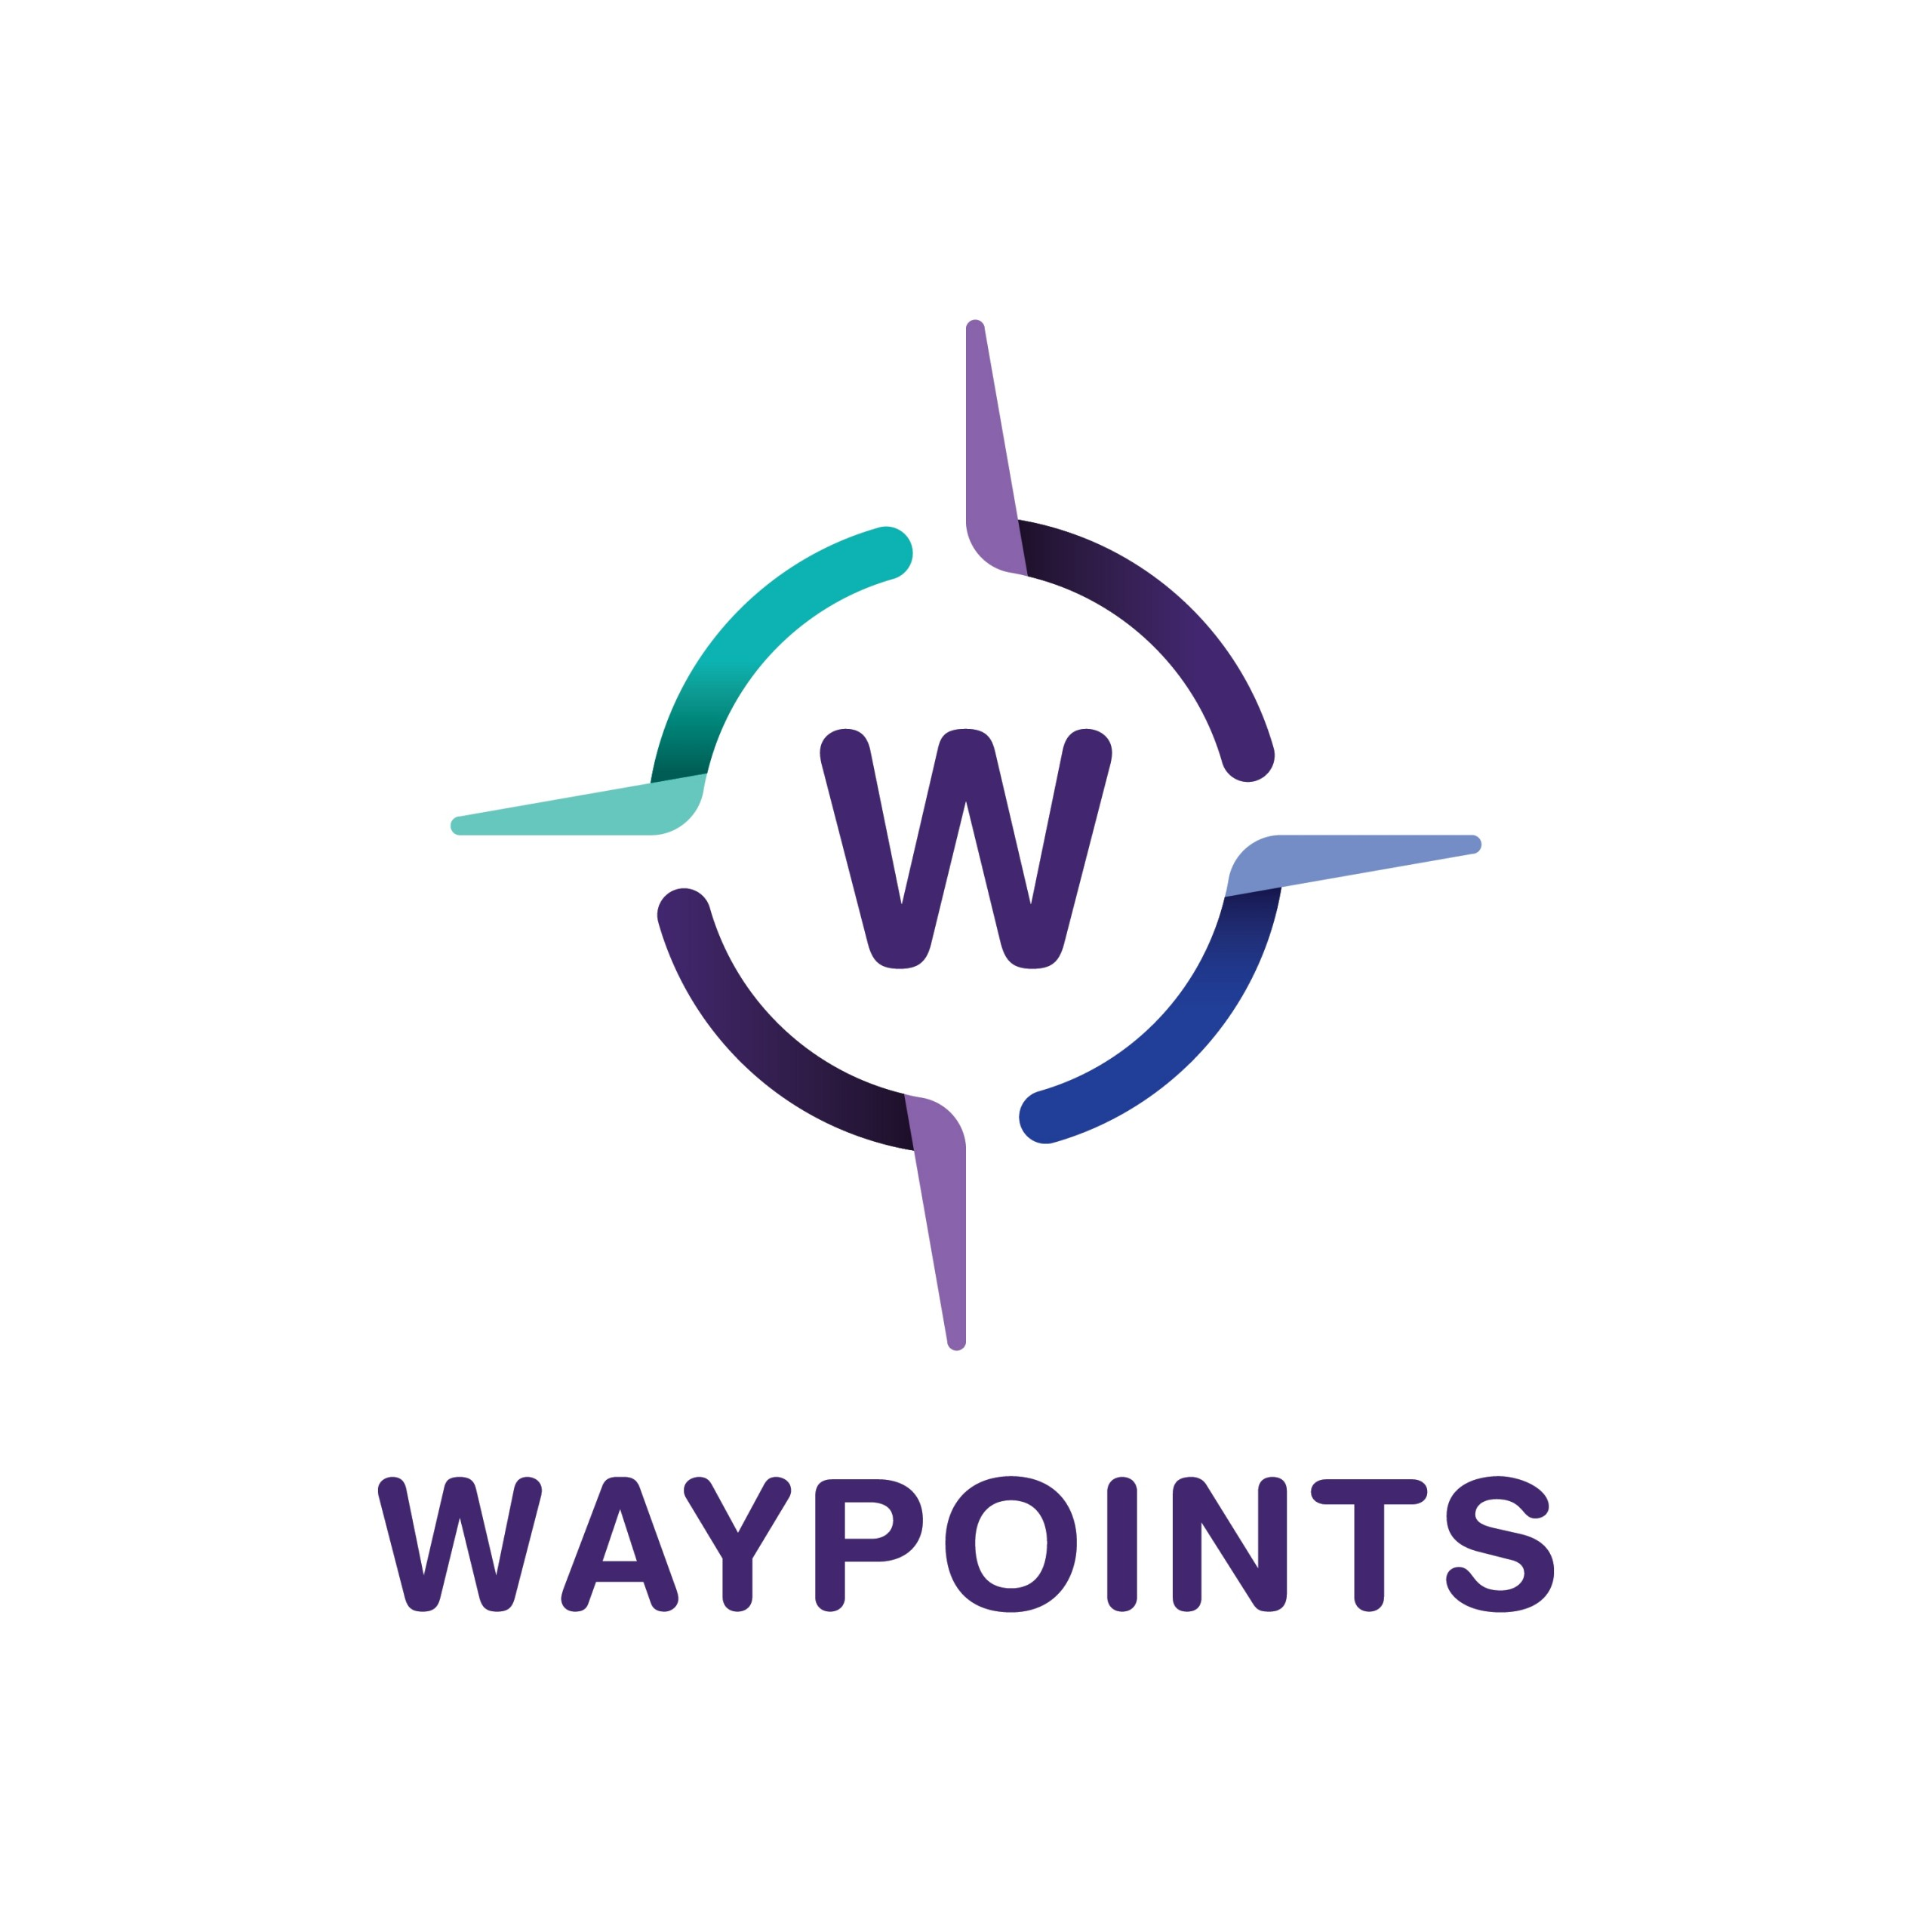 Waypoints Adding Staff Through Provincial Funding - Aimed At Reducing Wait List For Service